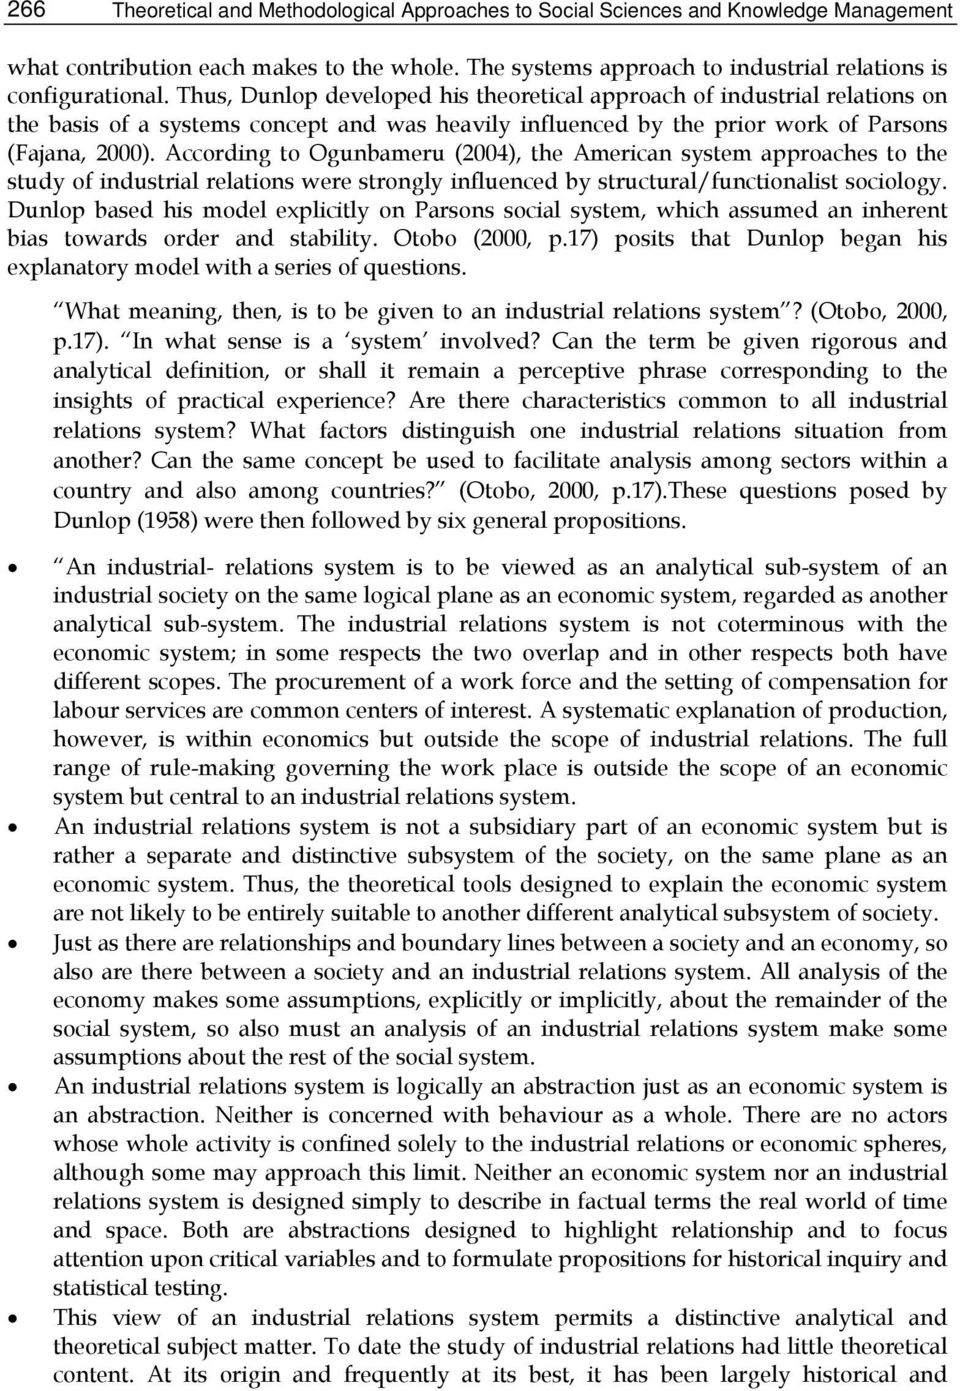 theoretical approaches to employment and industrial relations a comparison of subsisting orthodoxies This circumspect approach reflected dominant business it would be unwise to draw a comparison without hist studies in industrial relations 35.